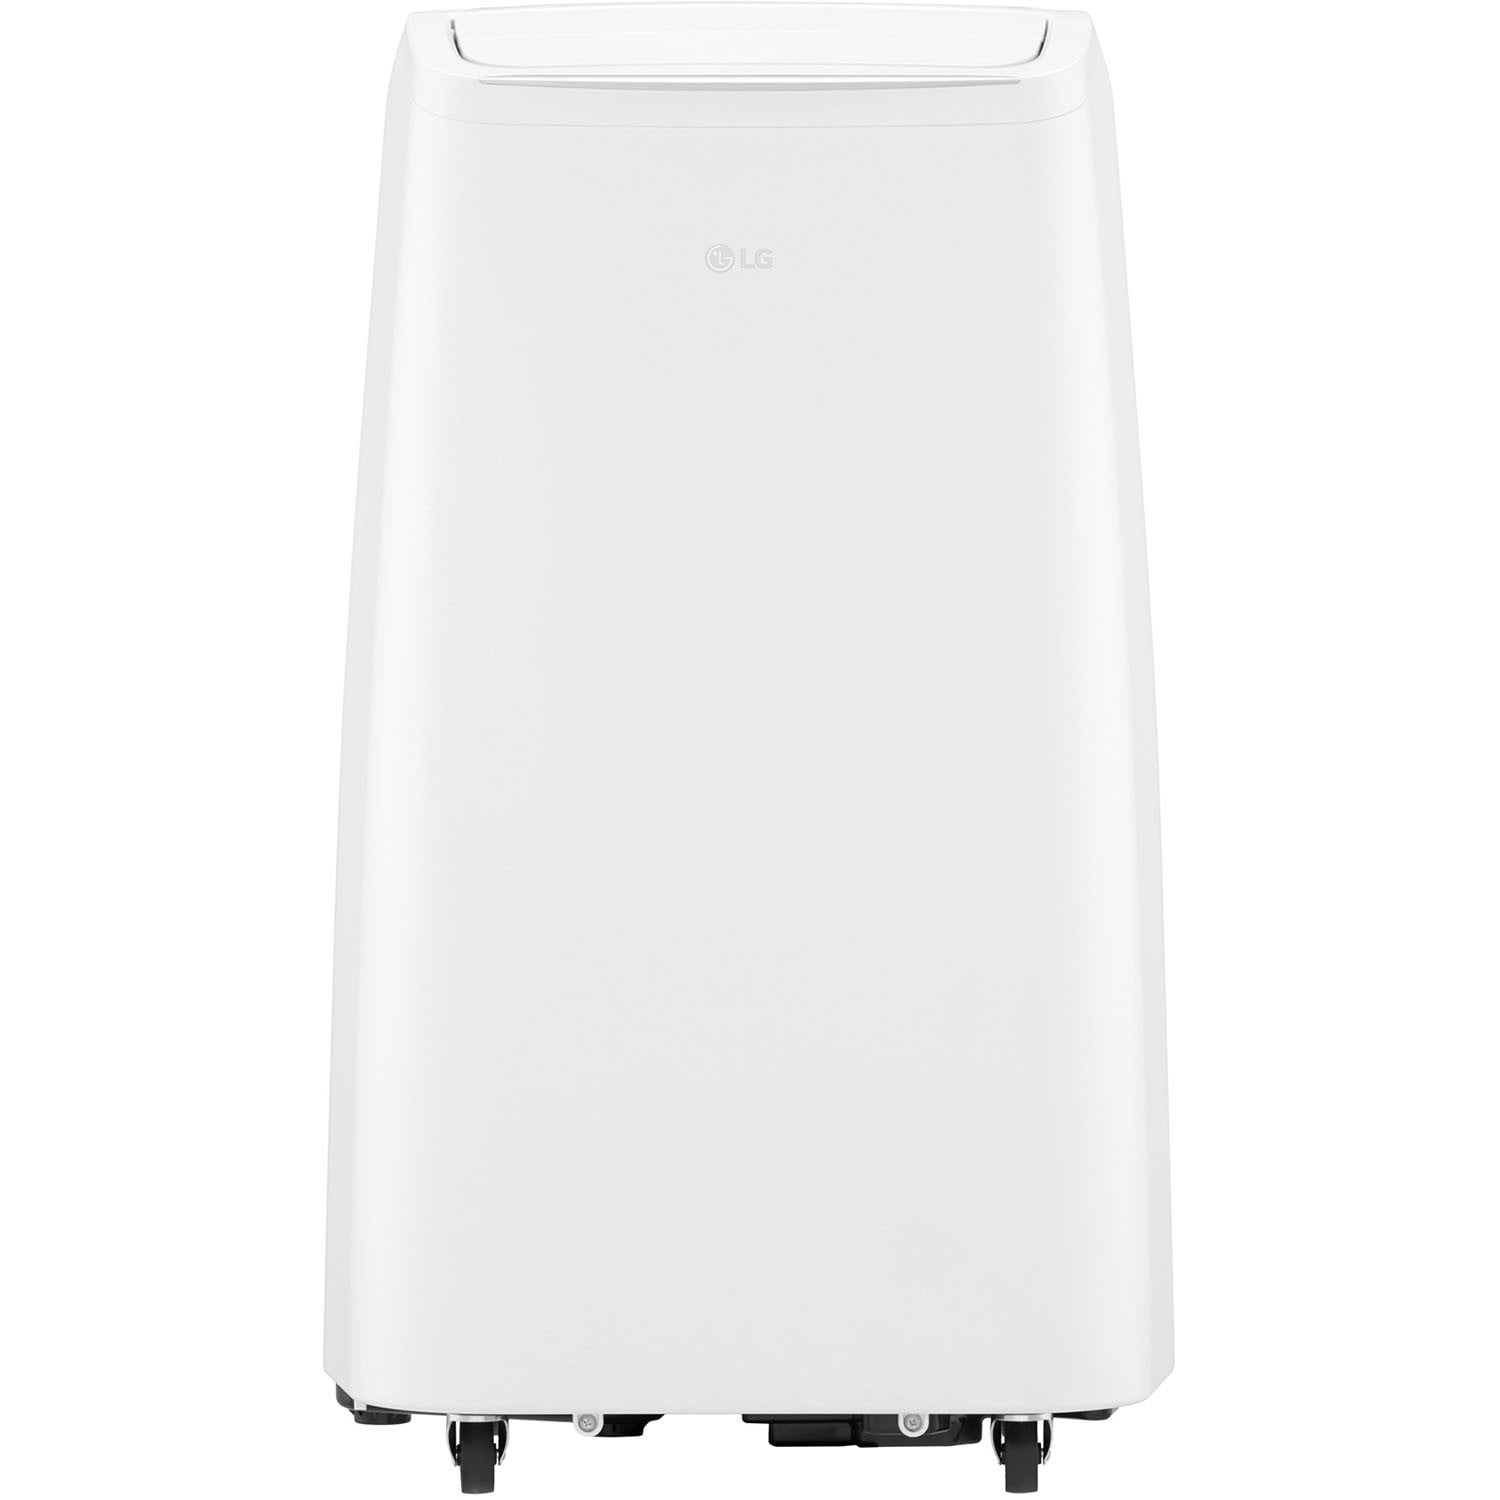 Portable Air Conditioners Walmart Com 15 best battery operated, portable, personal fans for all occasions. portable air conditioners walmart com